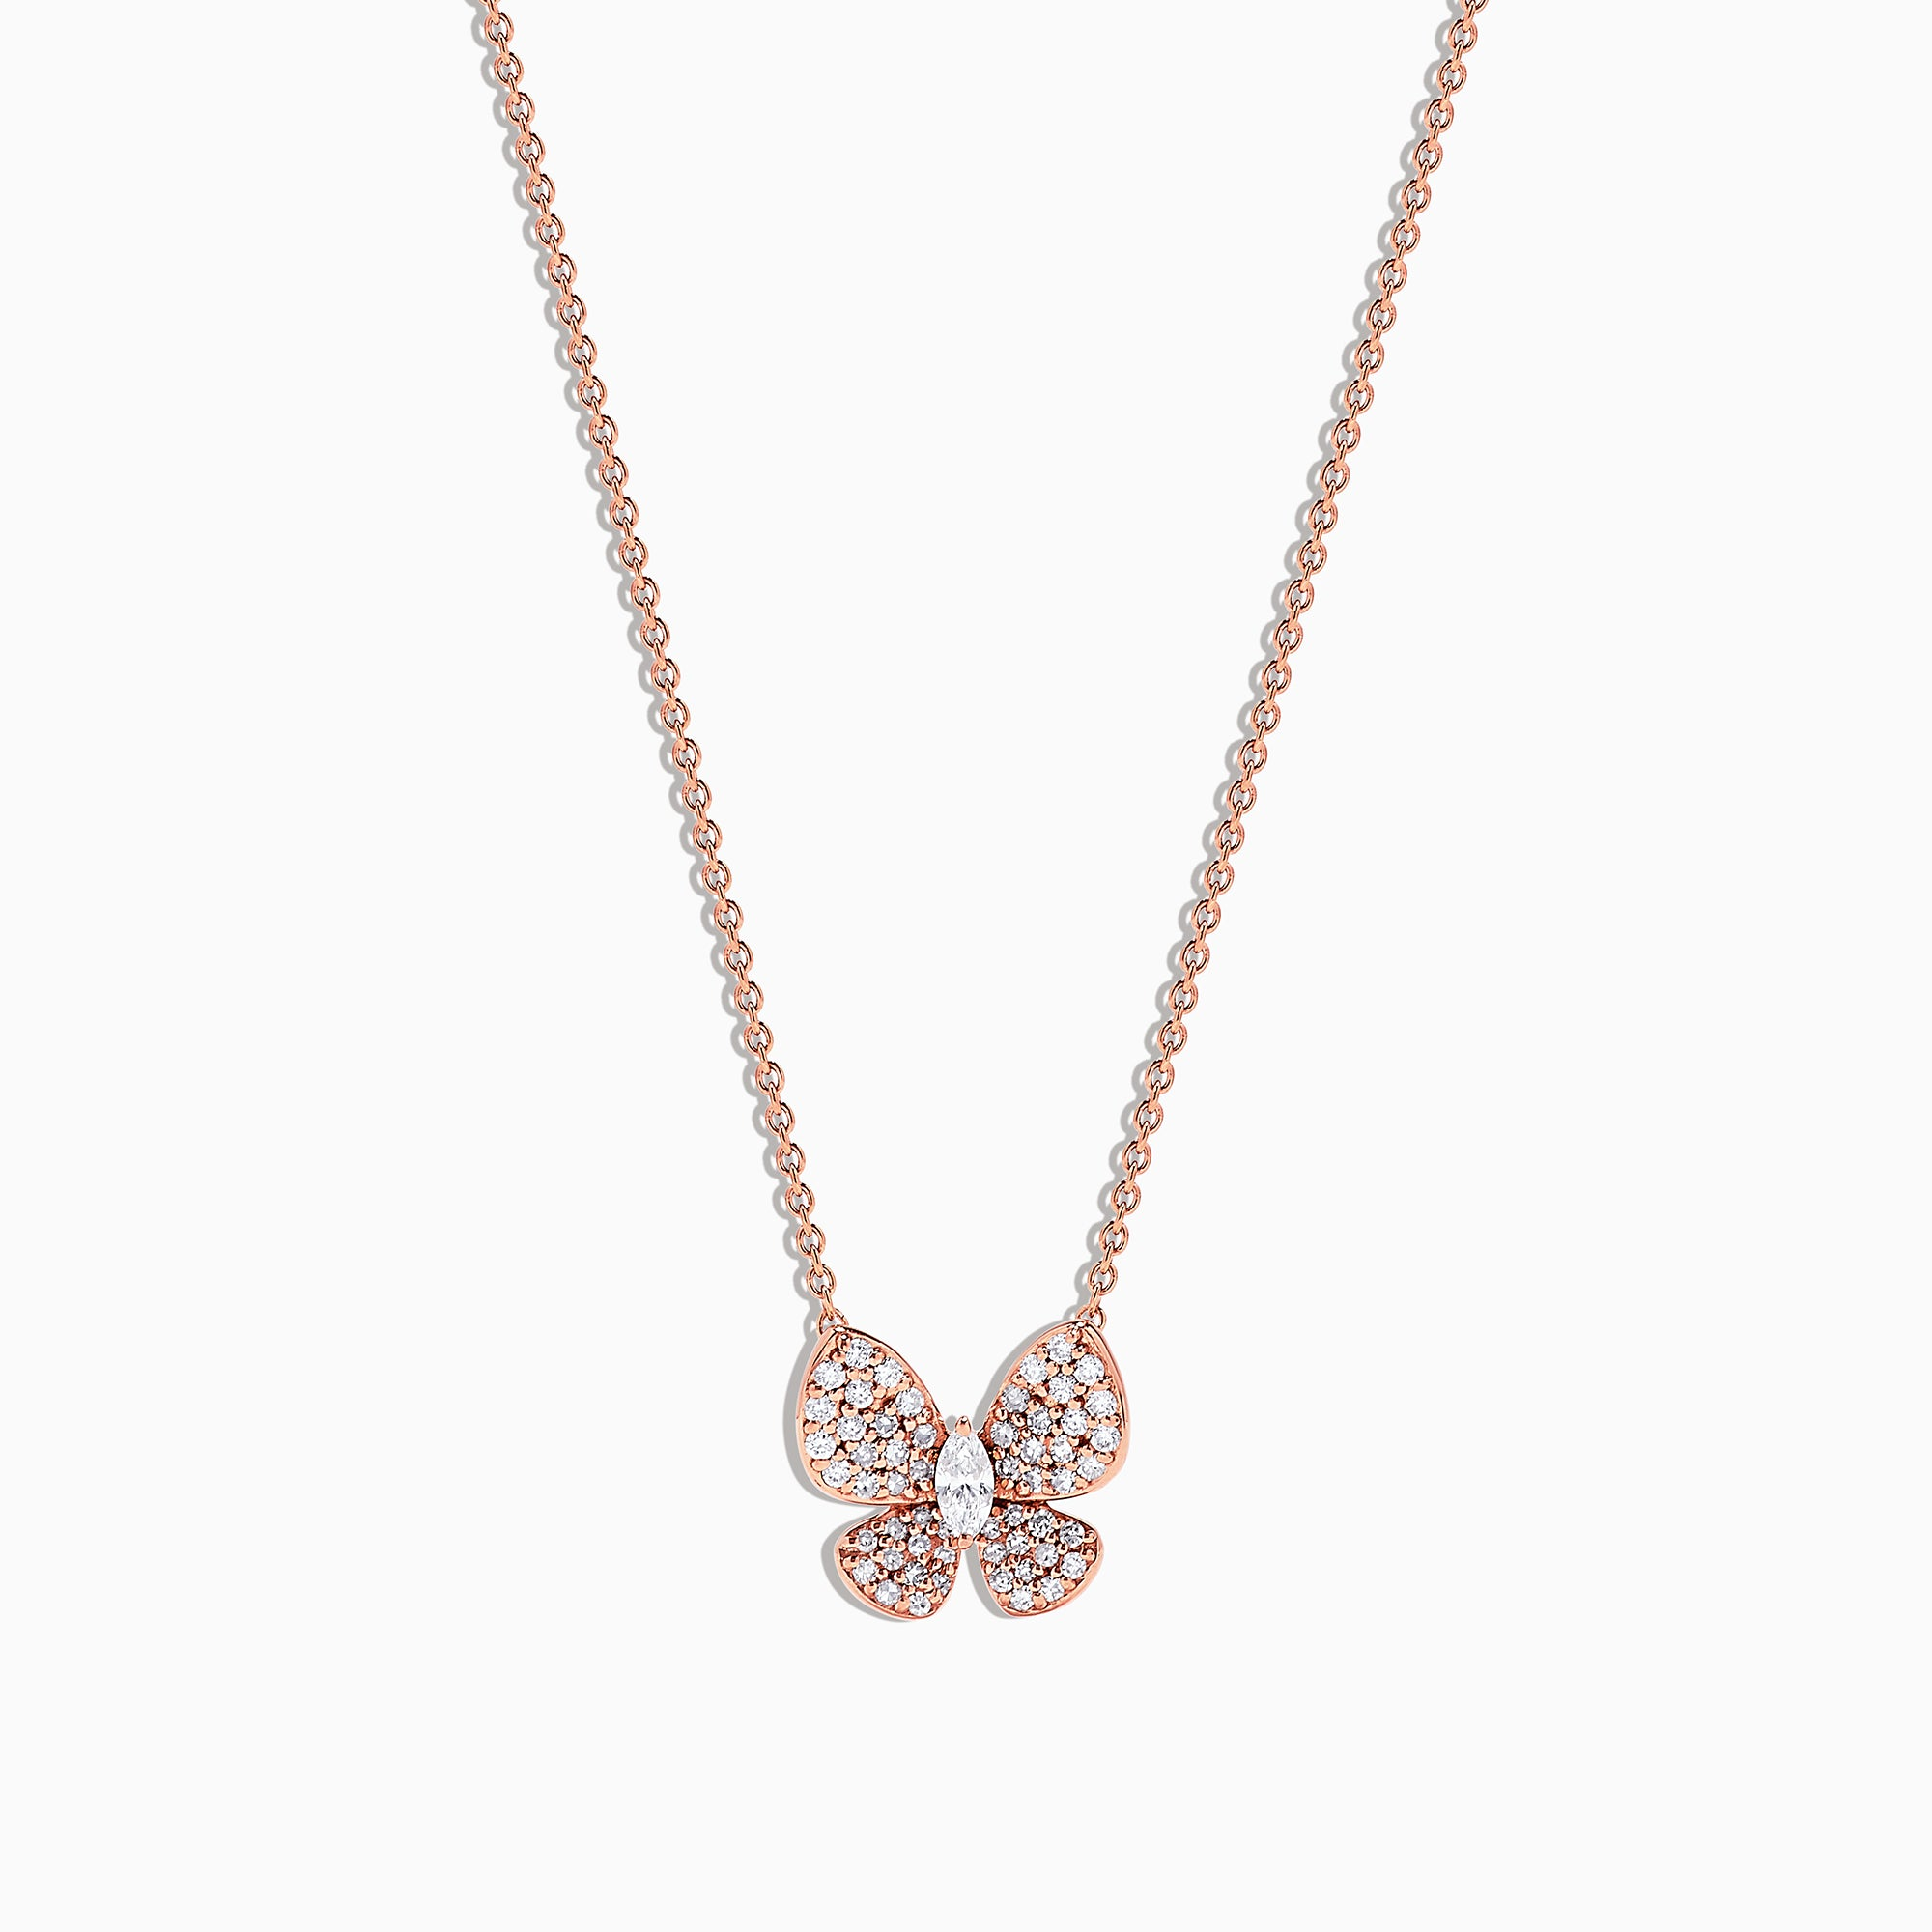 Effy Nature 14K Rose Gold Diamond Butterfly Necklace, 0.34 TCW